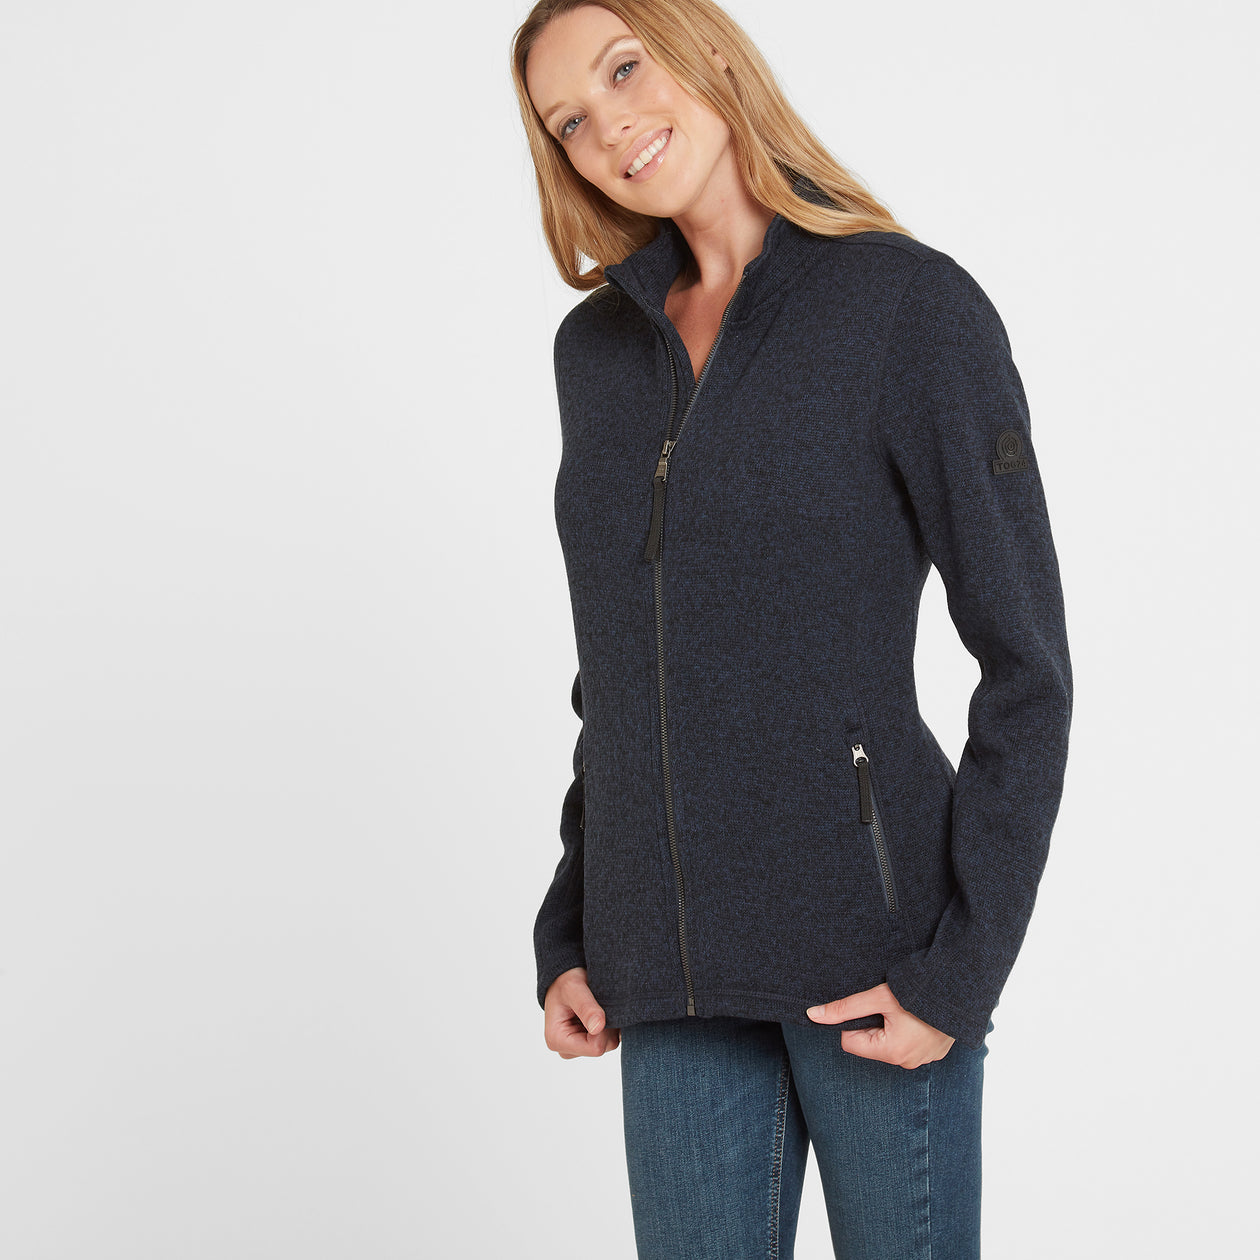 Garton Womens Knitlook Fleece Jacket - Dark Indigo image 4